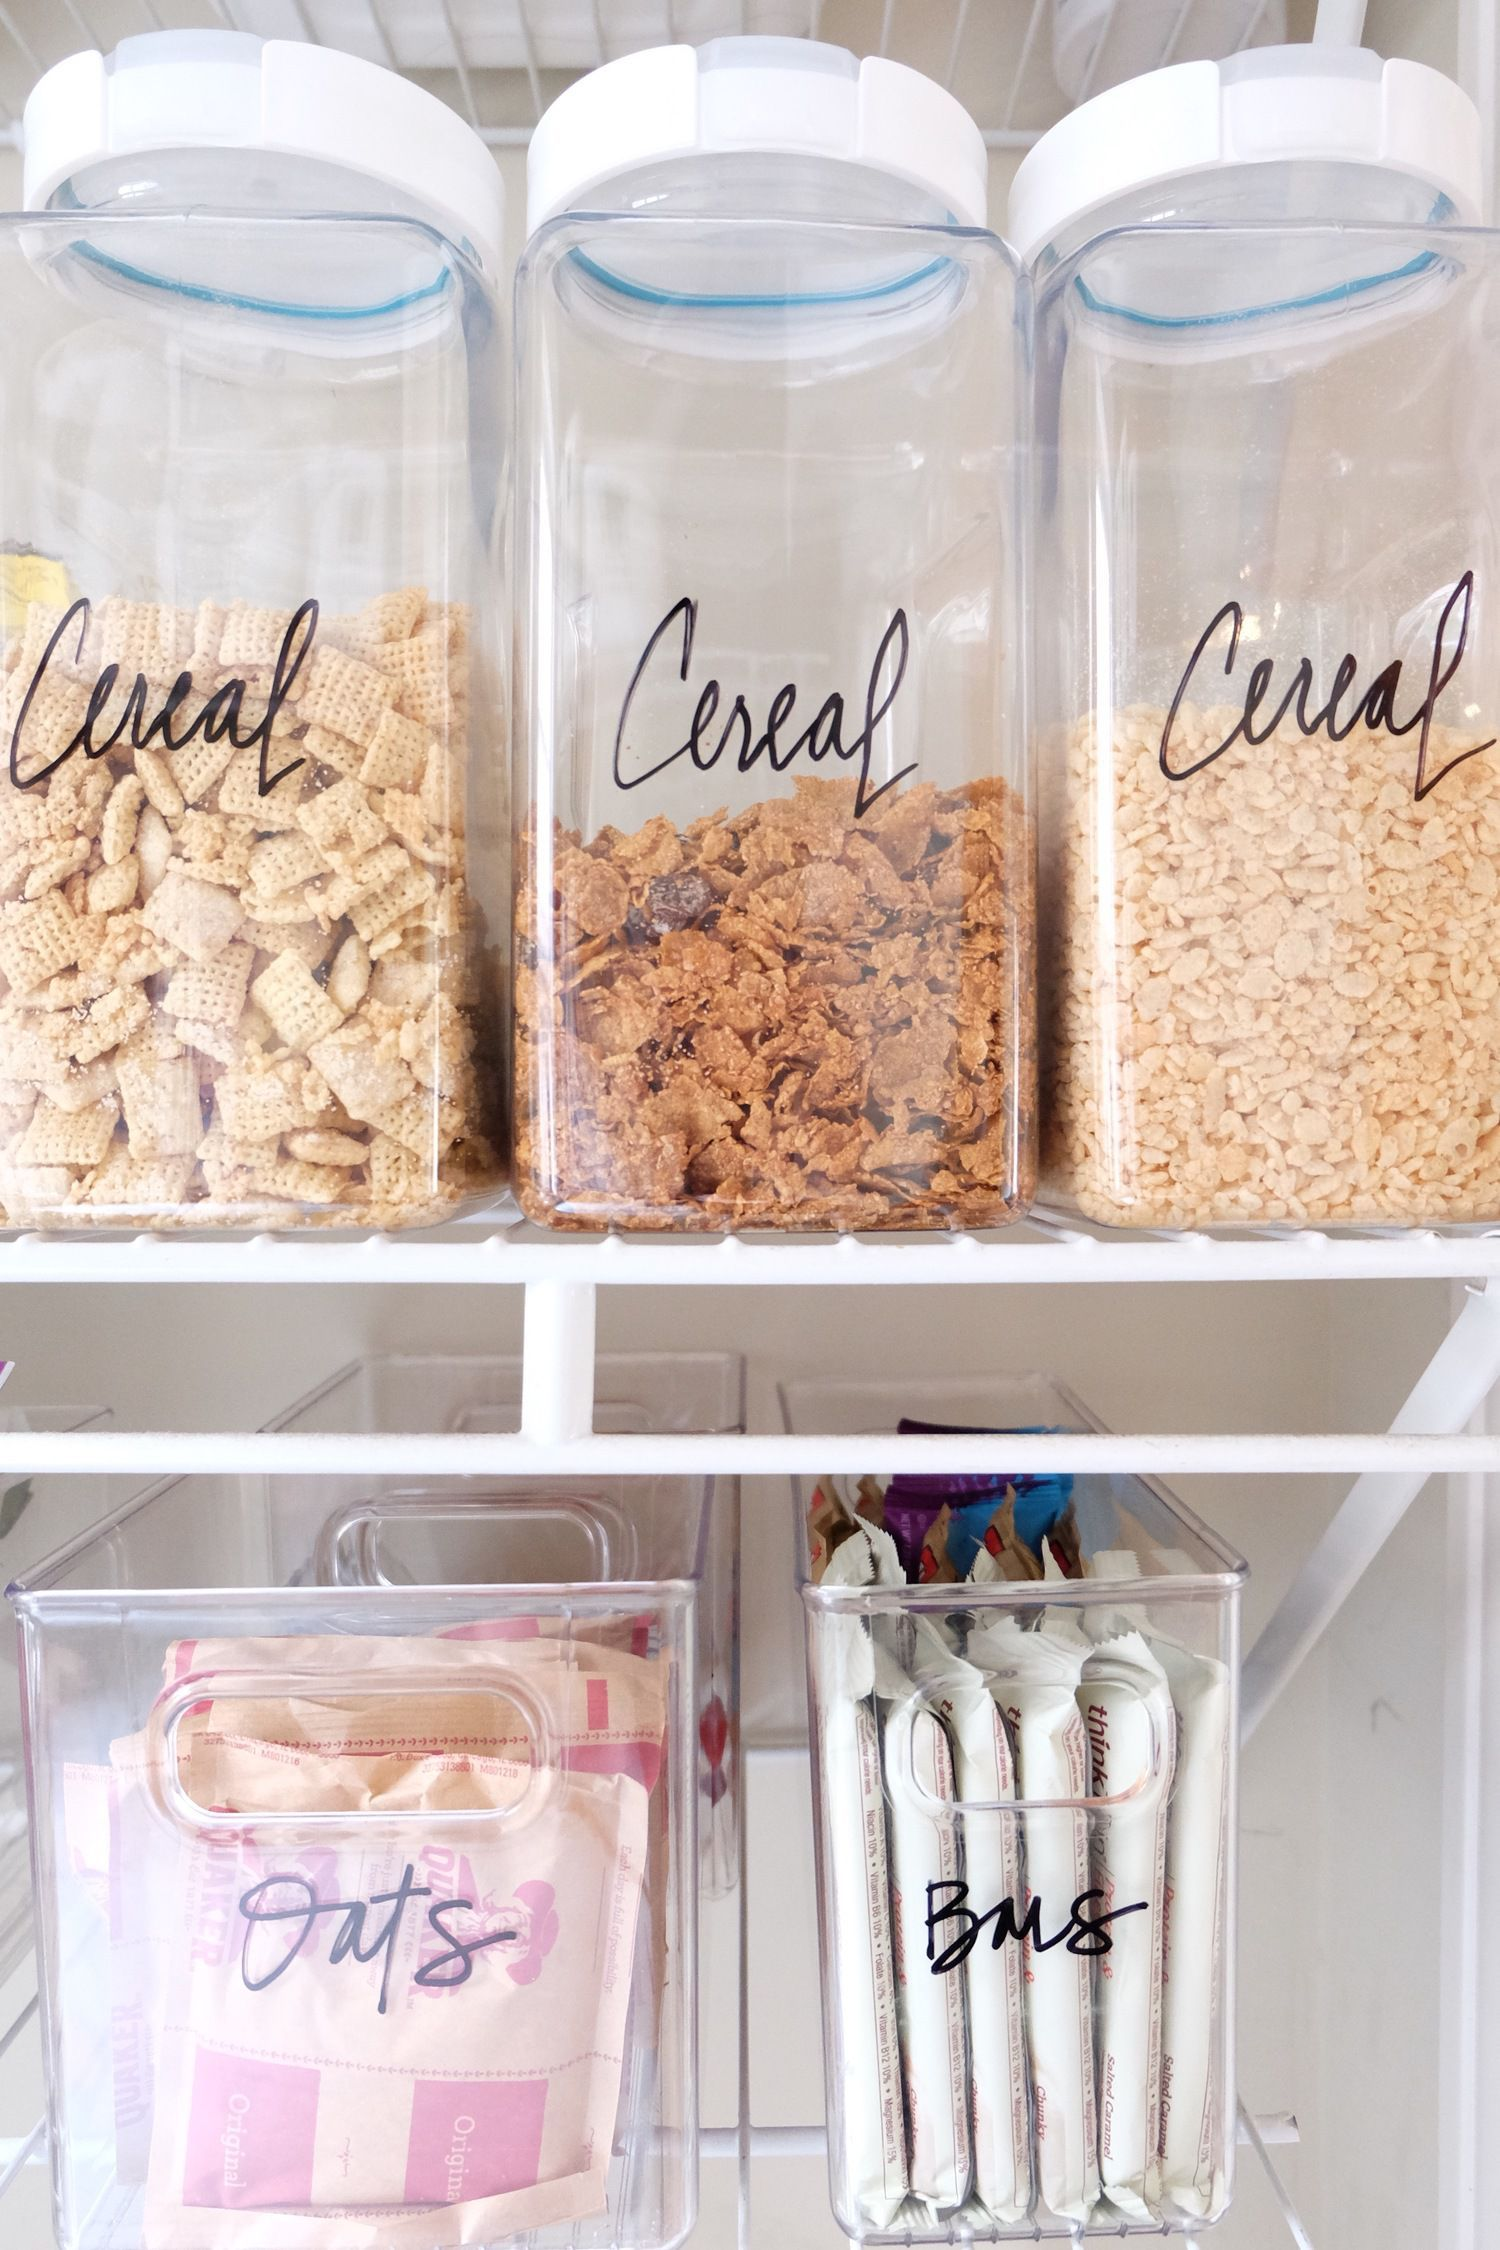 10 Tips To Get Your Pantry Organized - Kitchen Pantries,